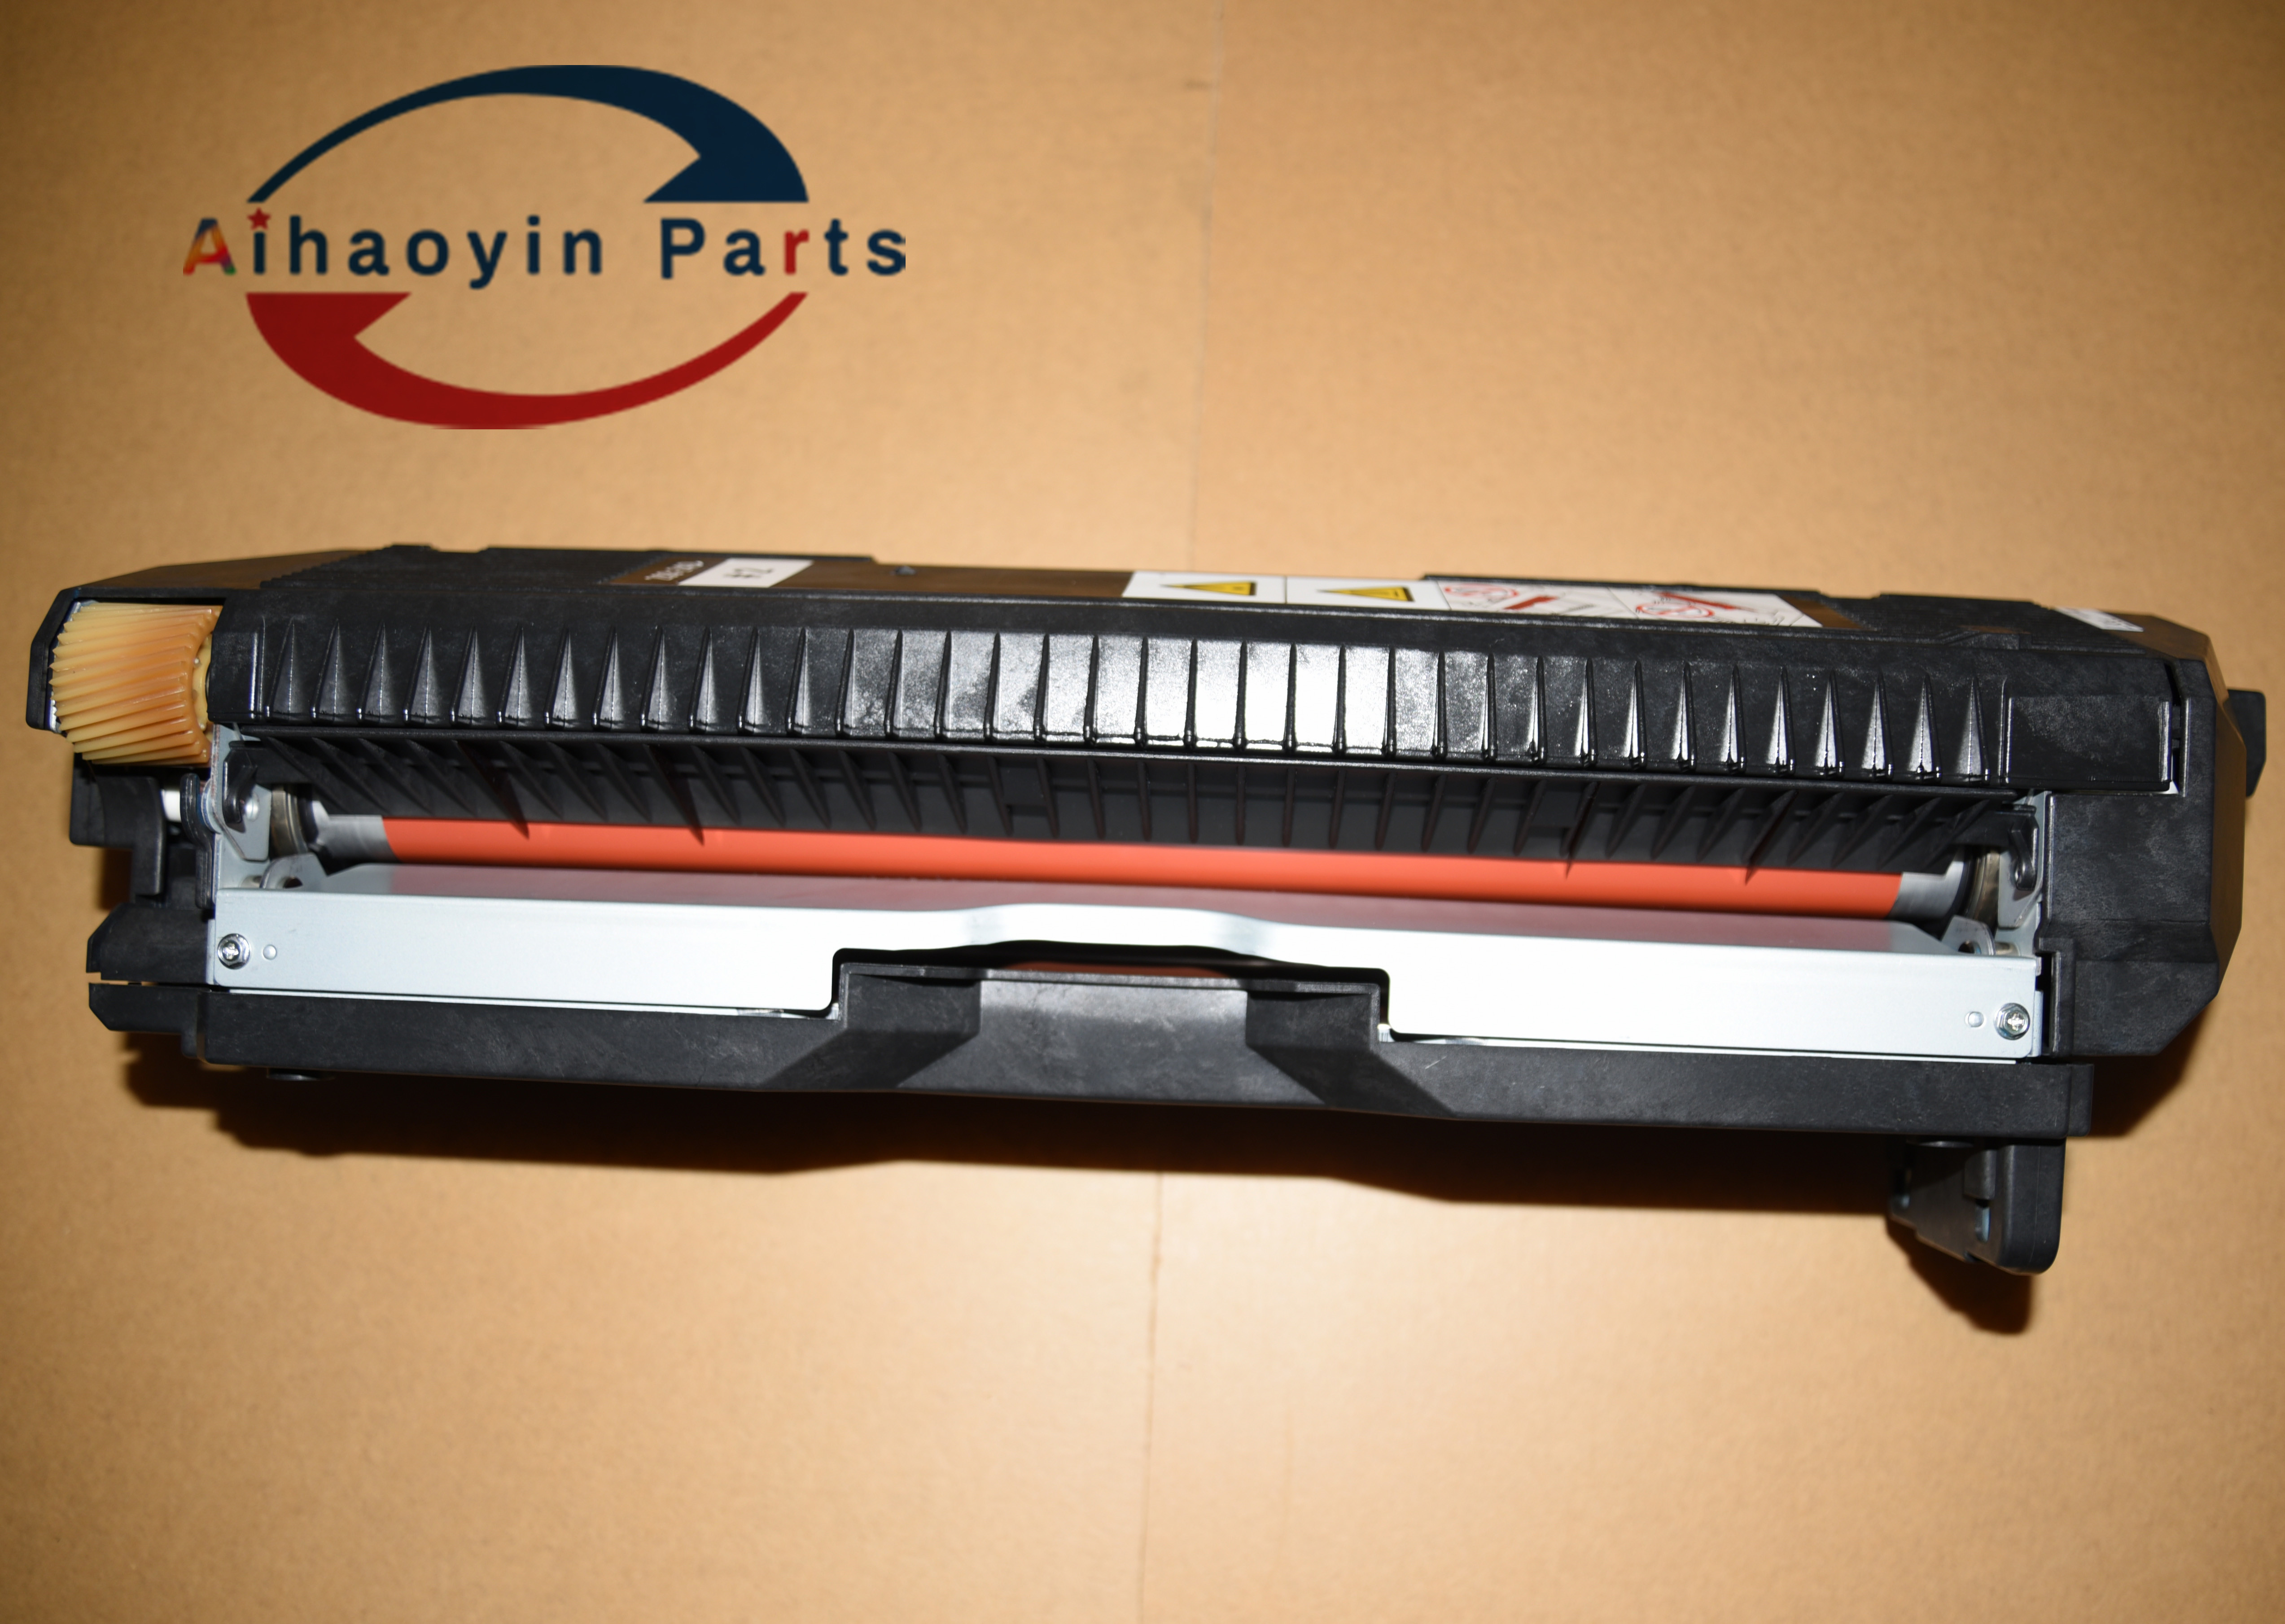 1pcs refubish 008R13102   Fusing Assembly for Xerox Color 550 560 570 700 700i C60 C70 Fuser Unit